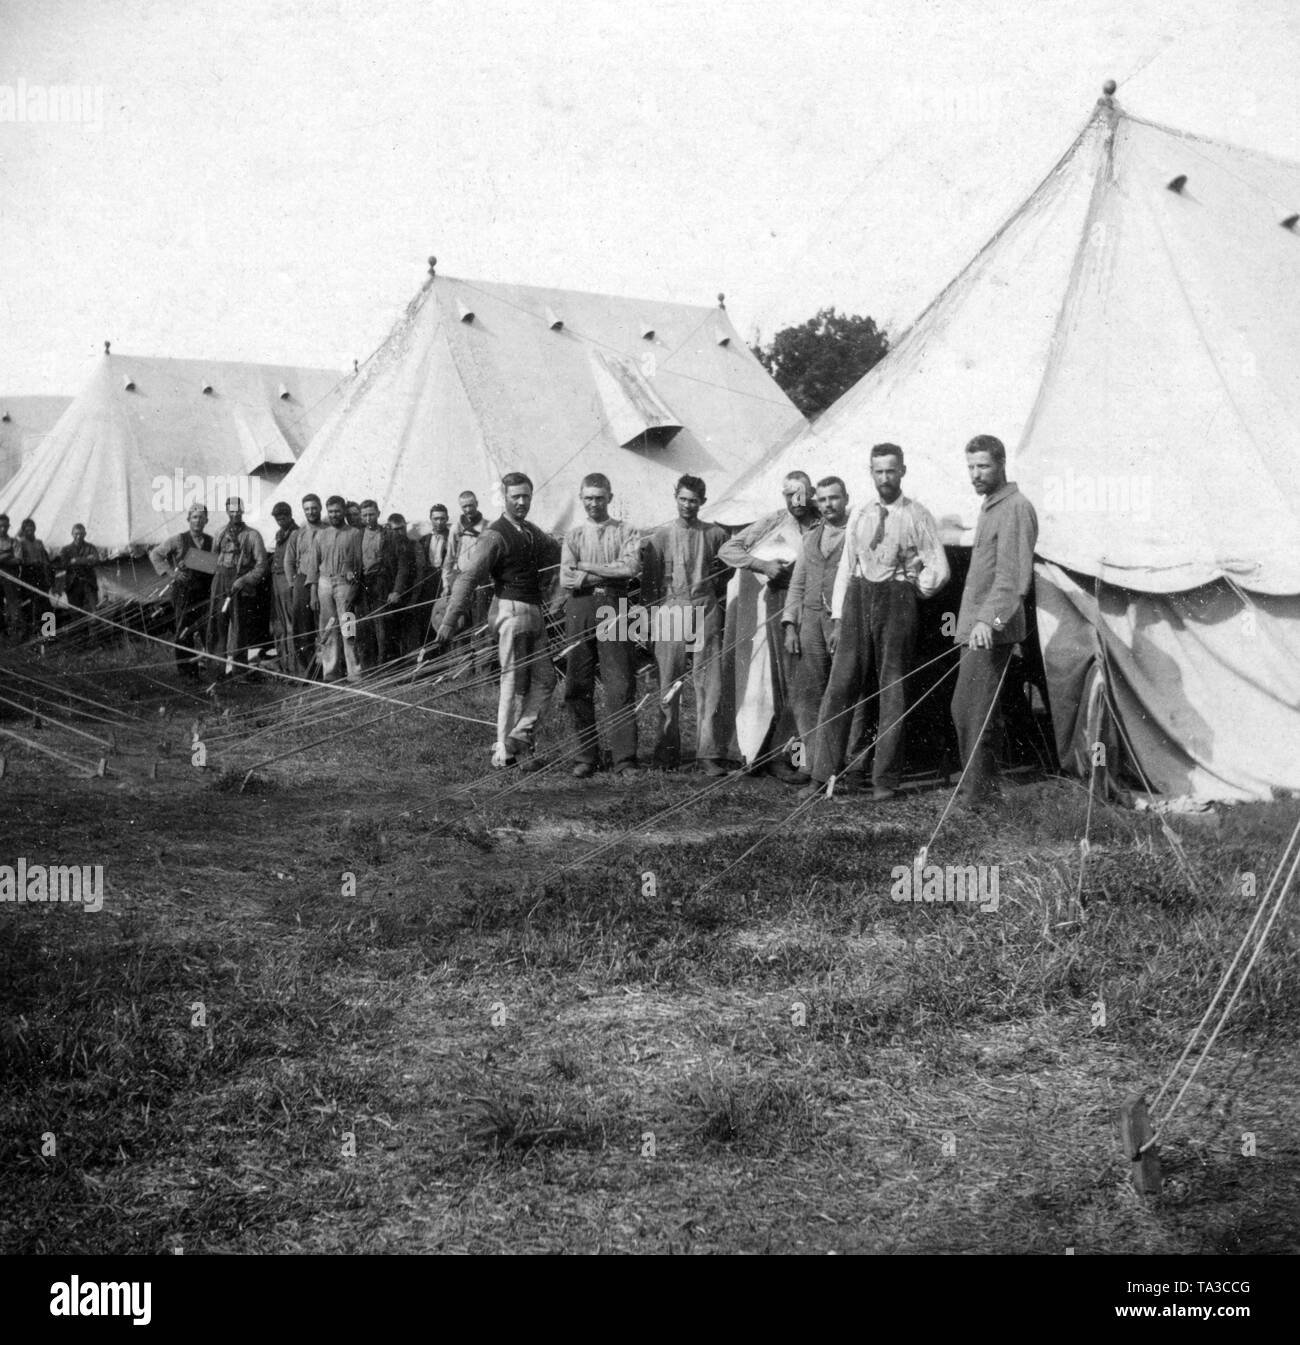 Captured Boers from South Africa, concentration camp 1899-1902: Boers in a prison camp on the Bermudas - school for adults. - Stock Image